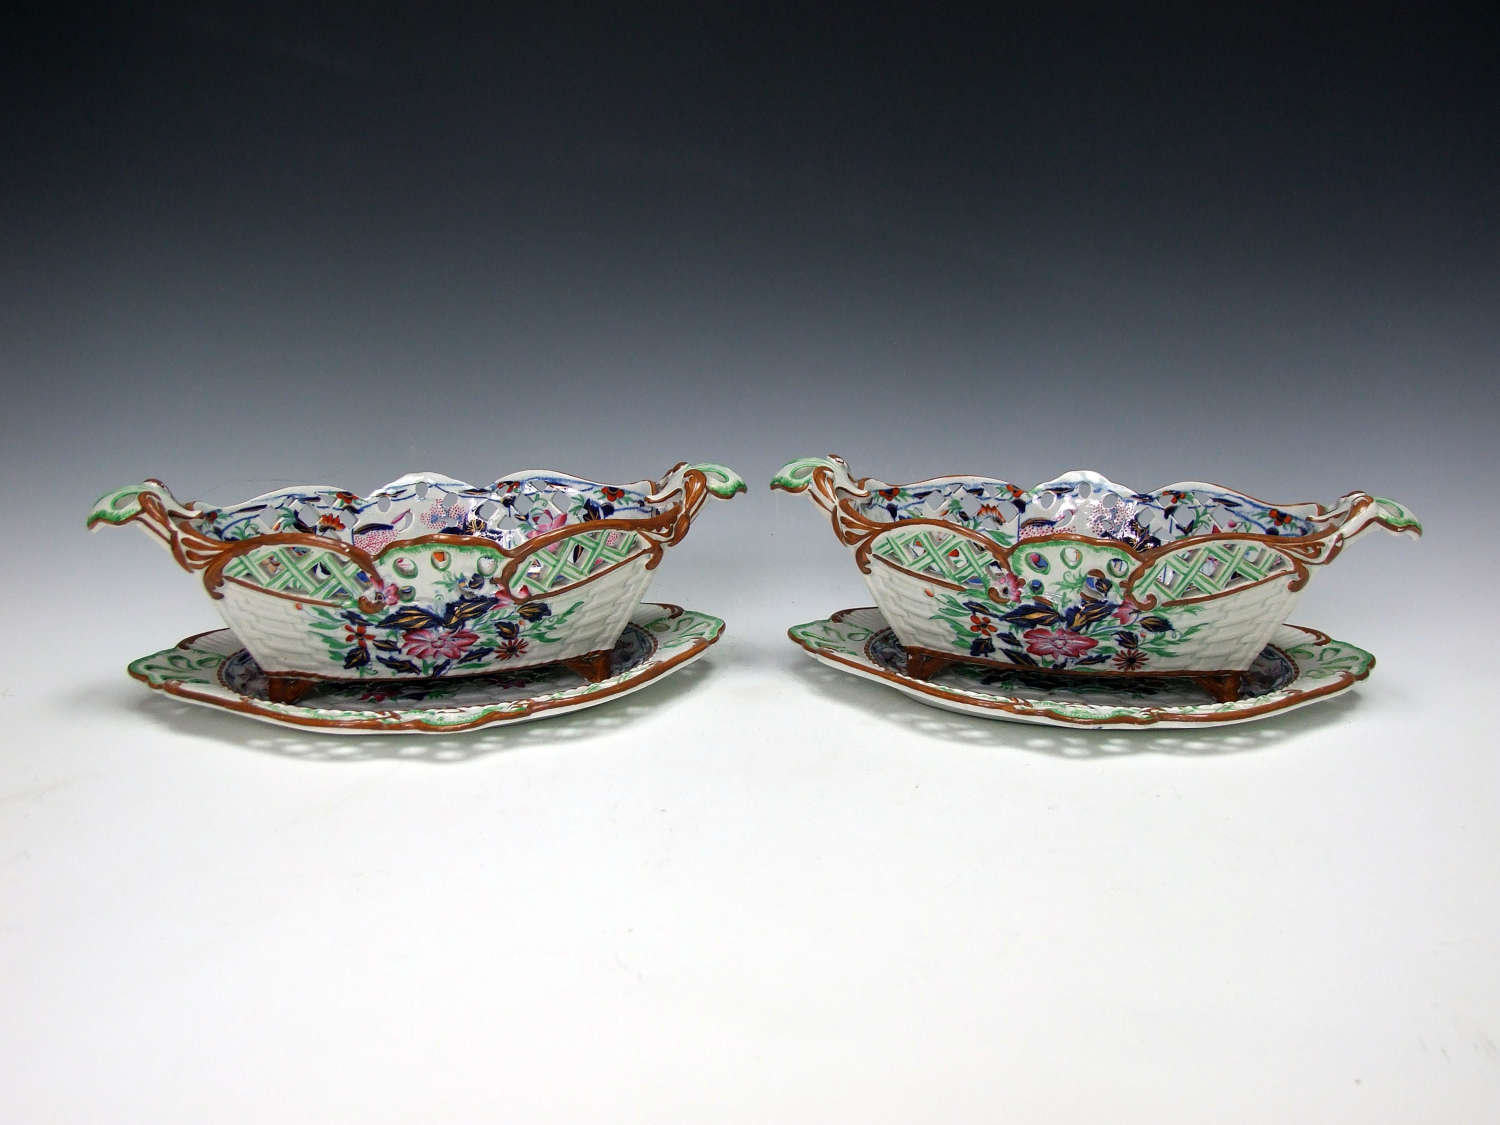 A beautiful mint condition pair of Spode chestnut baskets and stands.